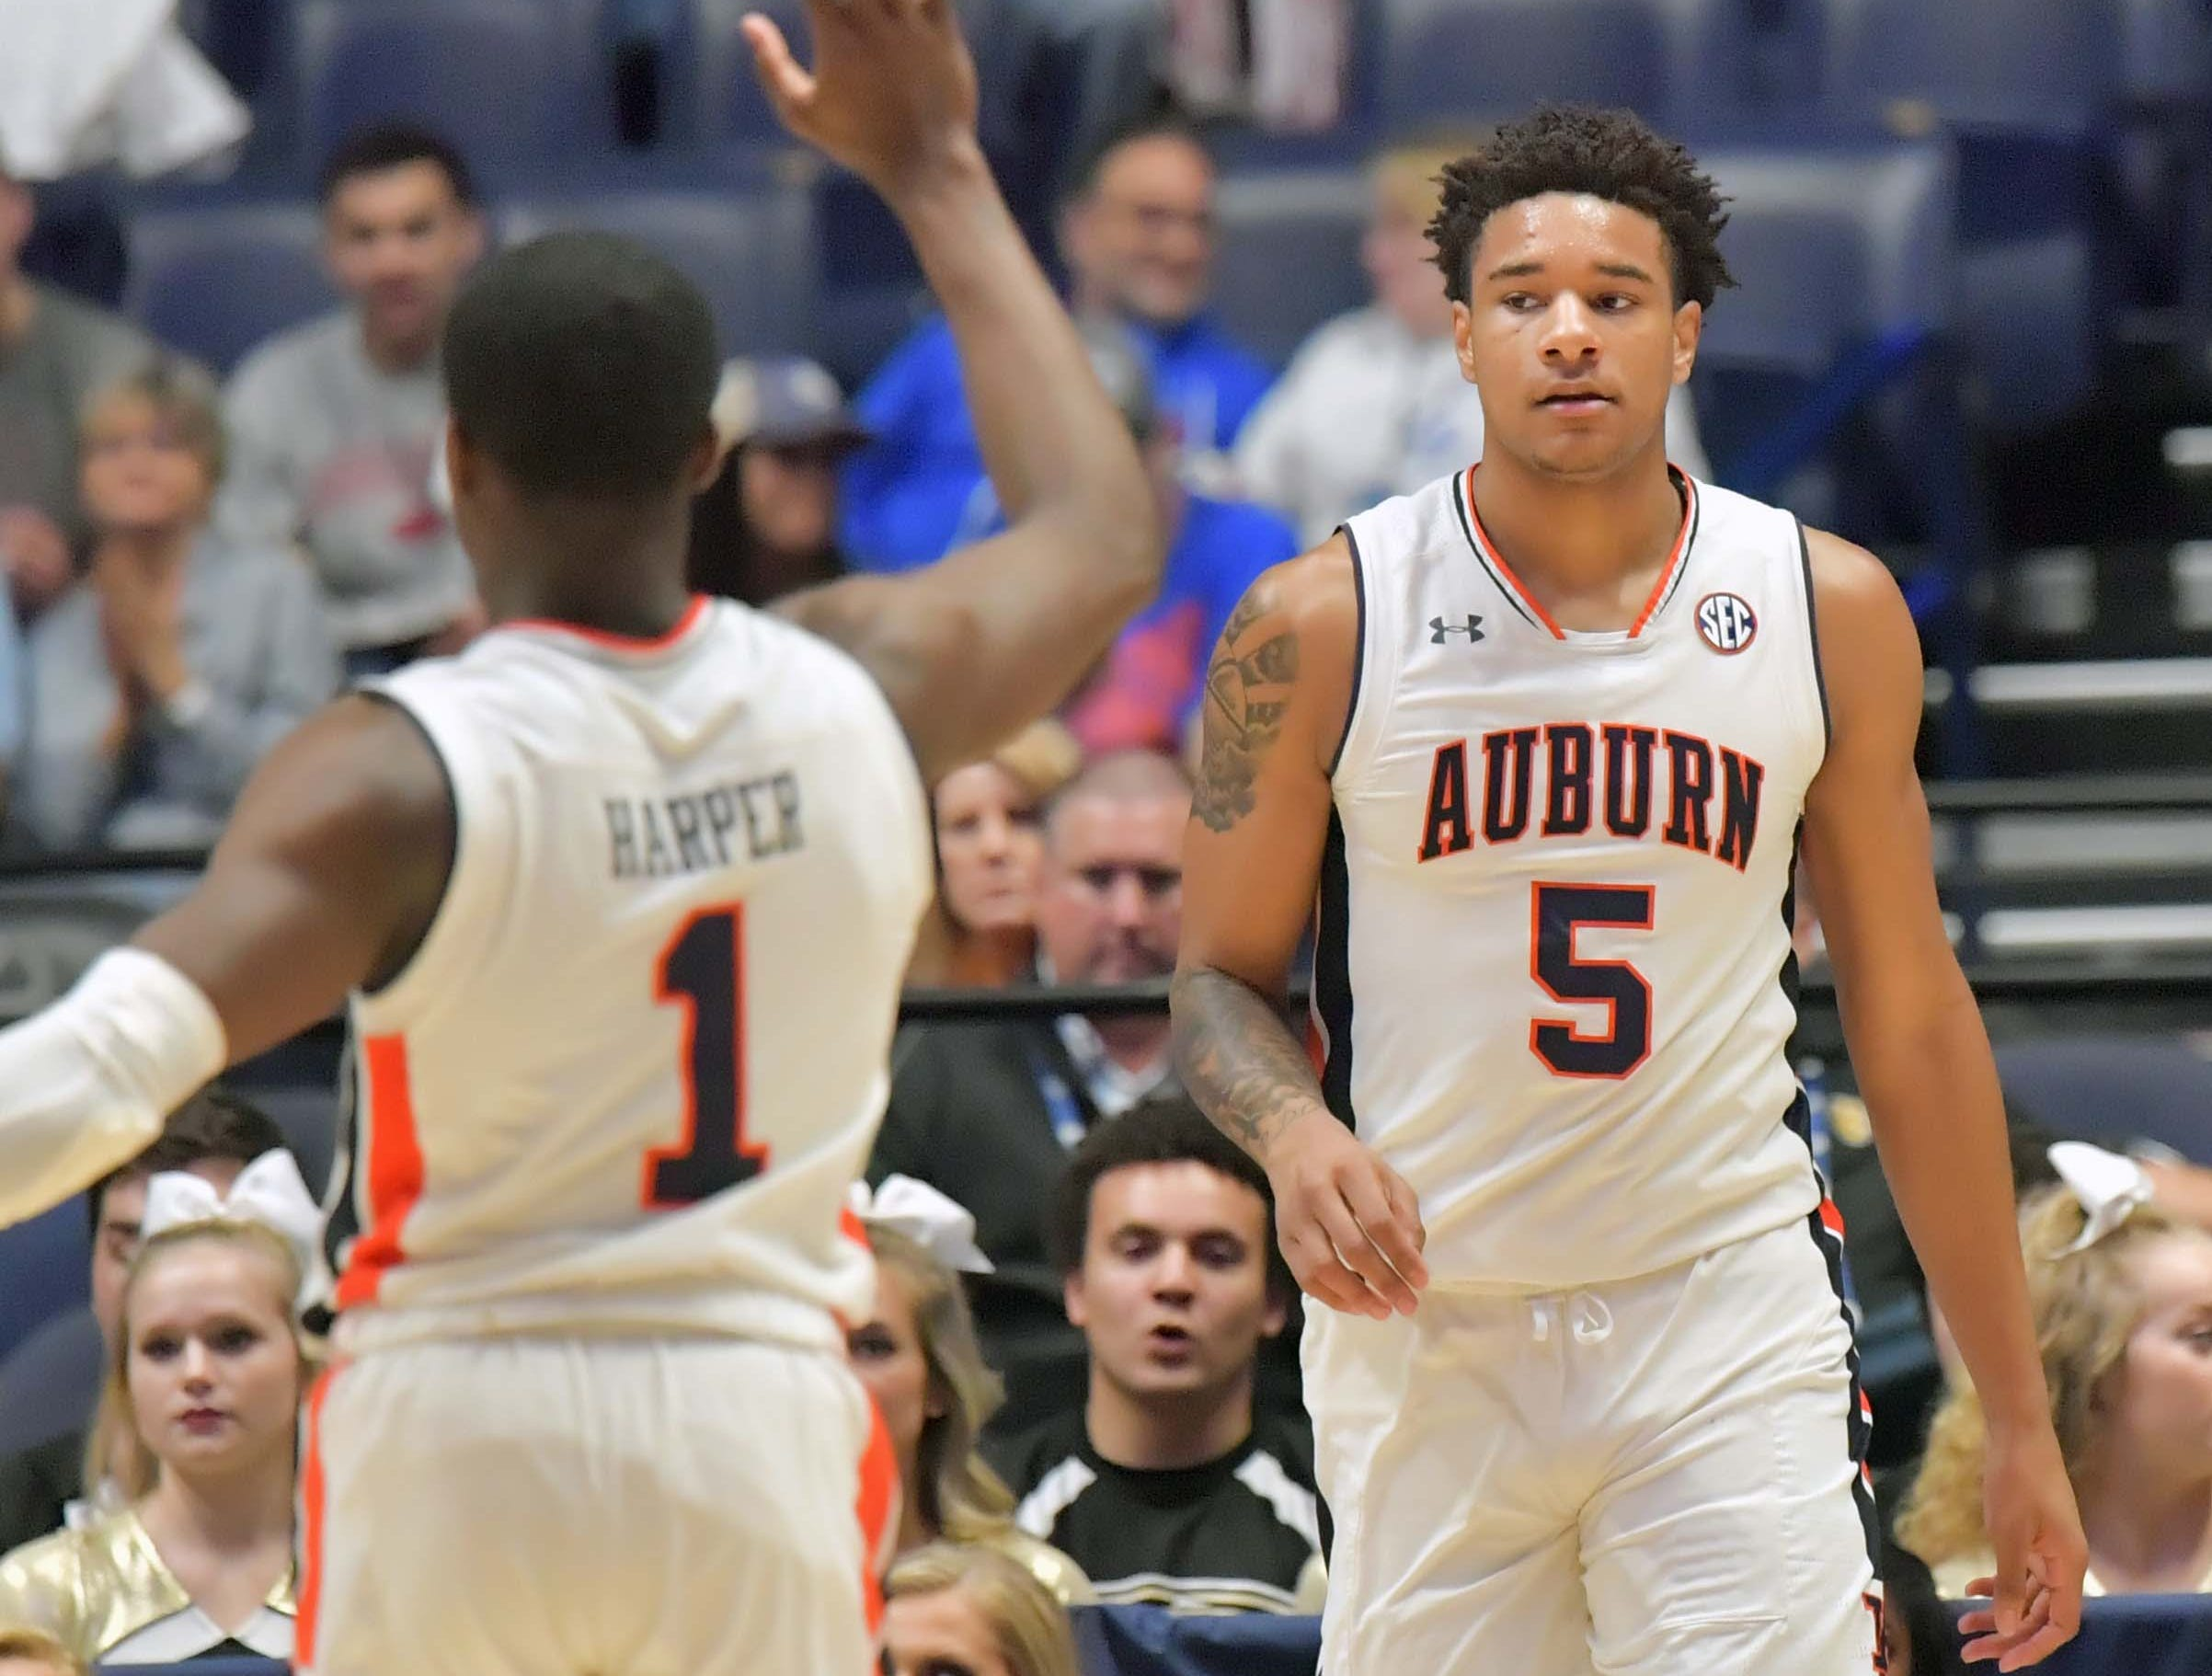 Mar 14, 2019; Nashville, TN, USA; Auburn Tigers forward Chuma Okeke (5) and guard Jared Harper (1) react in the first half Auburn Tigers mascot entertains fans  in the SEC conference tournament at Bridgestone Arena. Mandatory Credit: Jim Brown-USA TODAY Sports